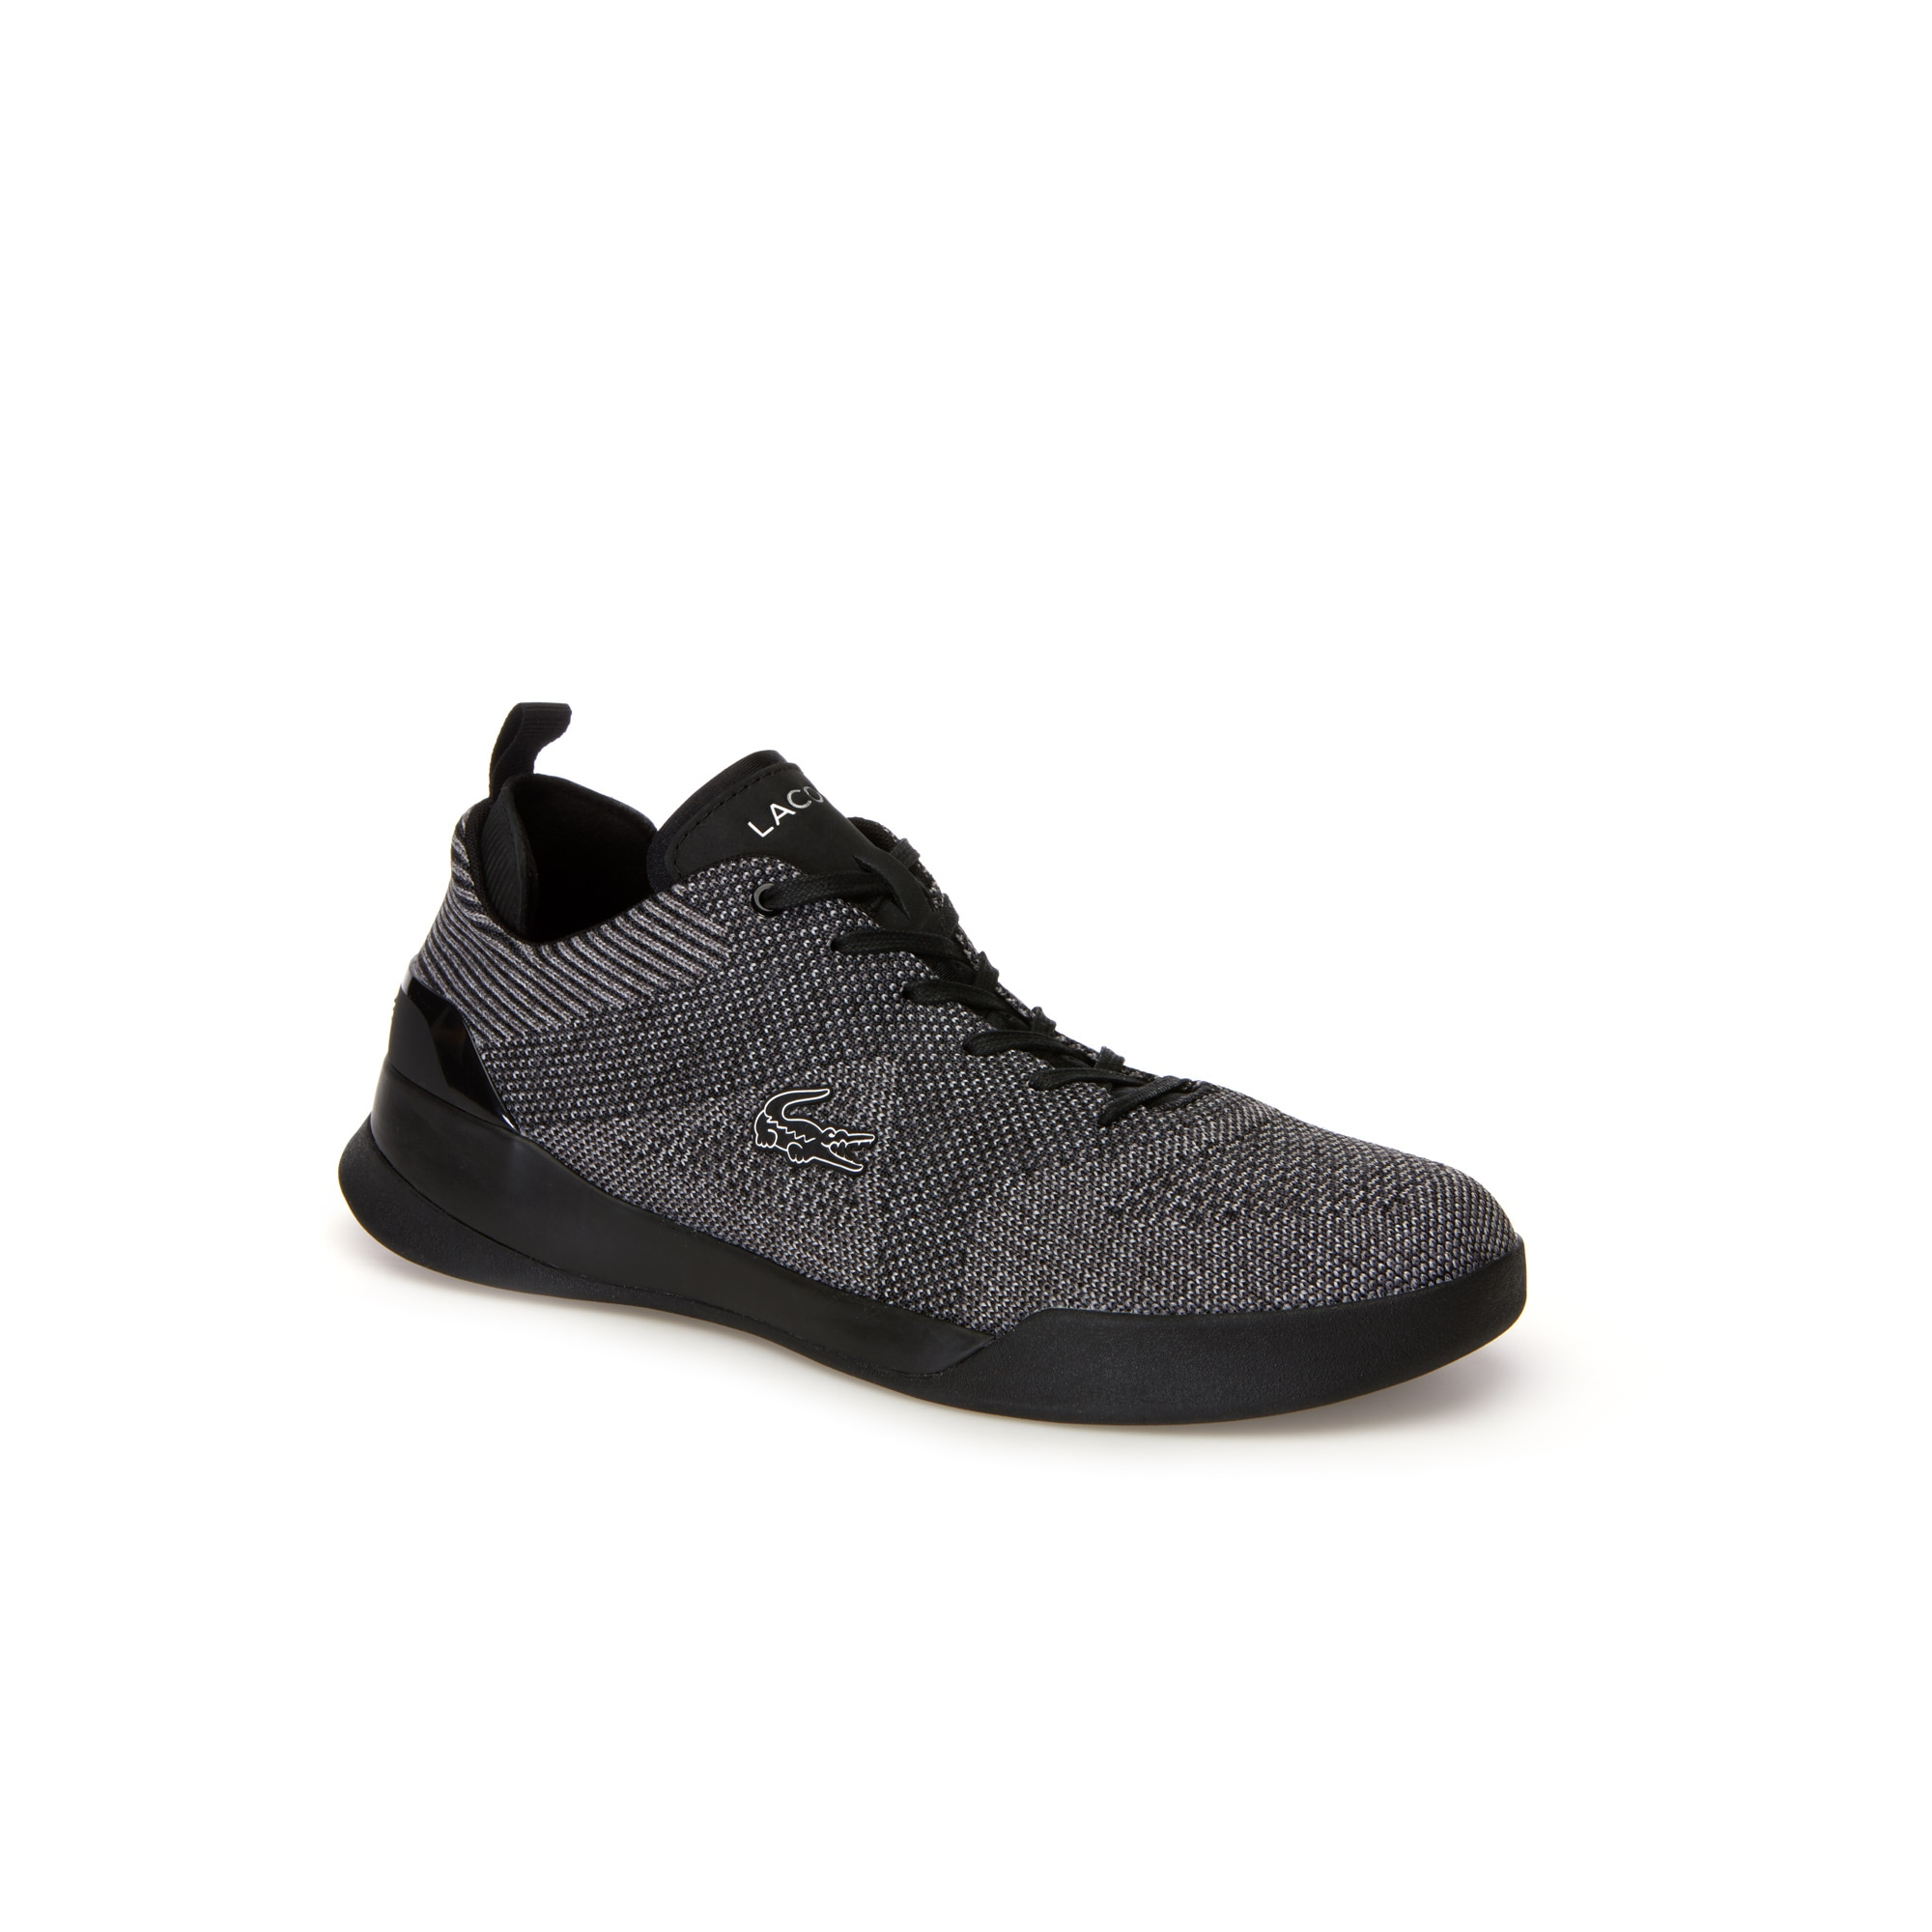 Men's LT Dual Elite SPORT Piqué Mesh Trainers